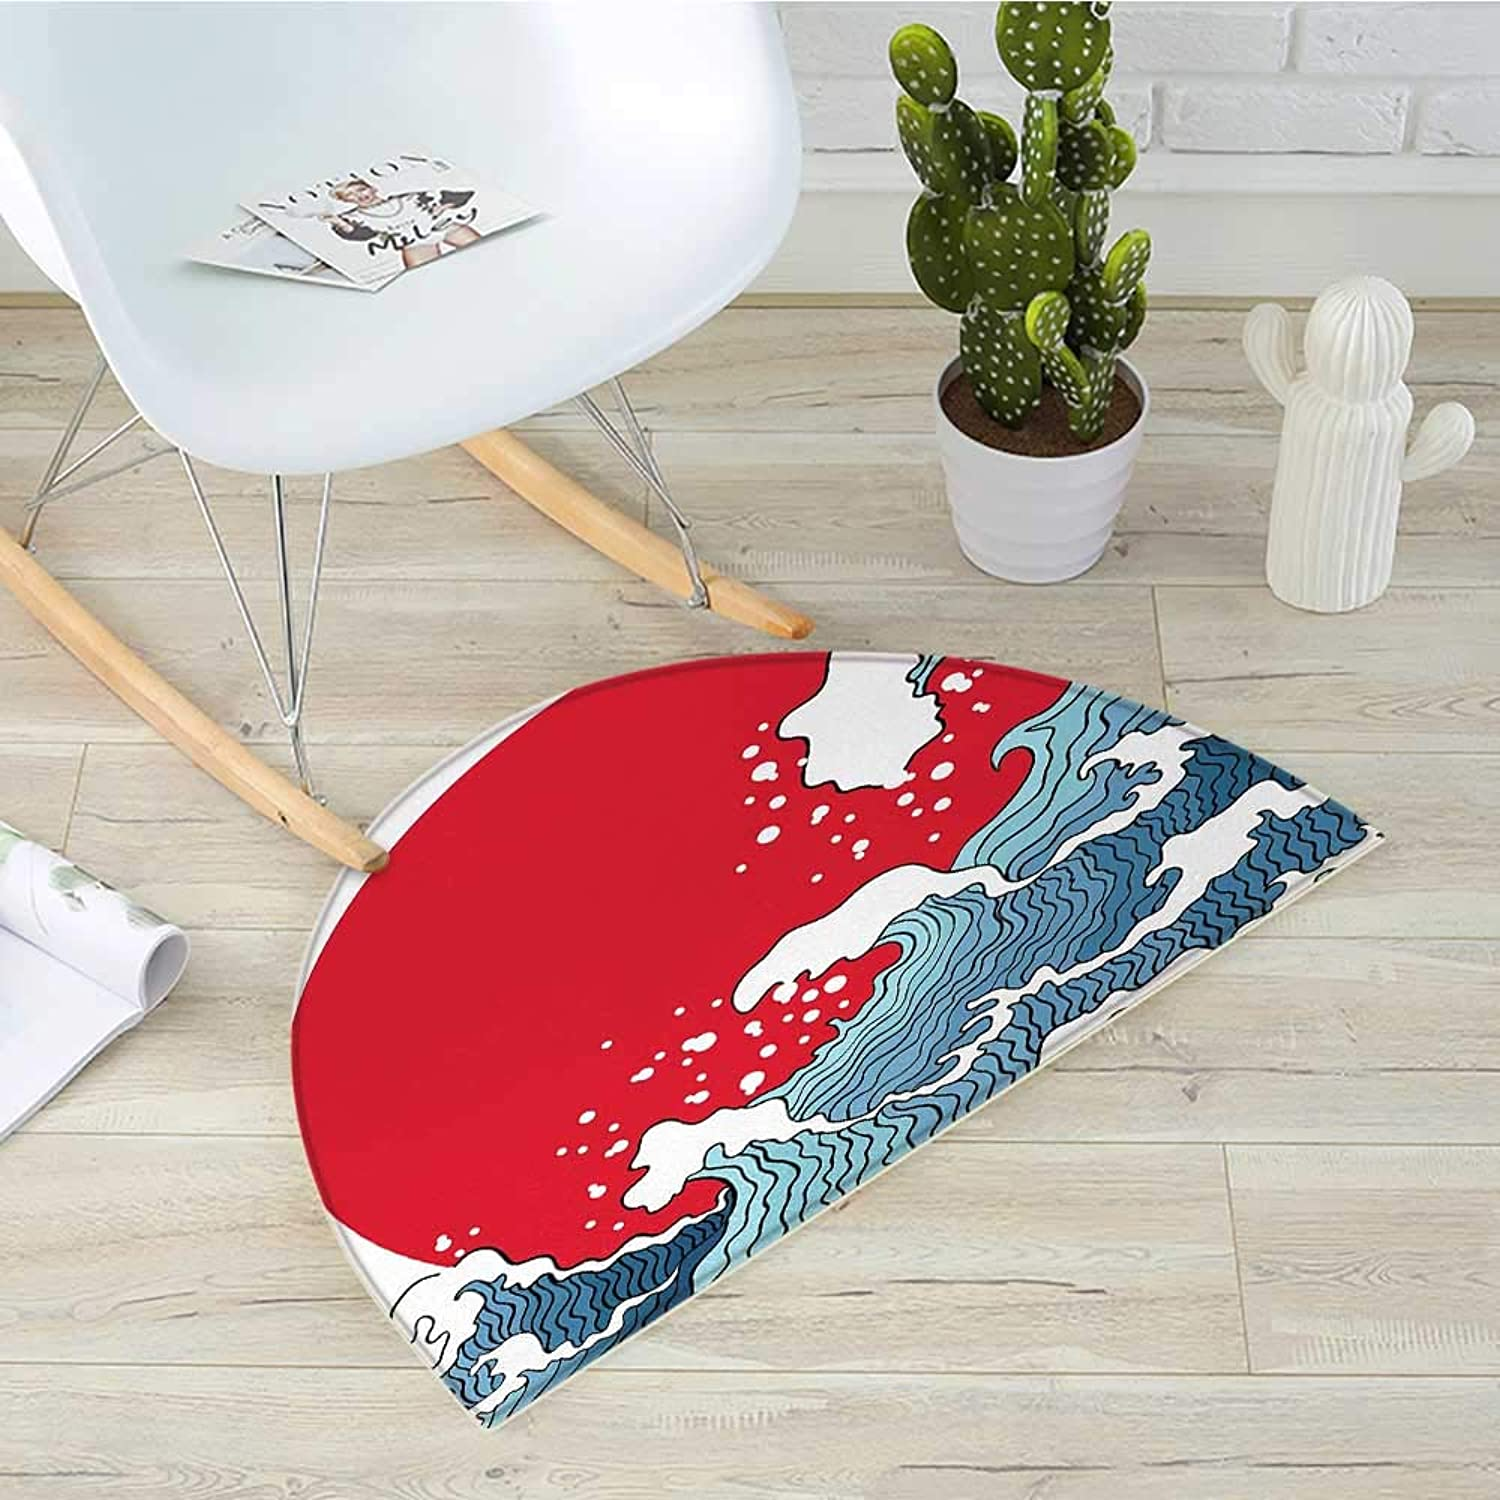 Japanese Wave Semicircle Doormat Big Red Sun Setting Scenery Tropical Nautical Artistic Tsunami Swirls Halfmoon doormats H 31.5  xD 47.2  Red bluee White